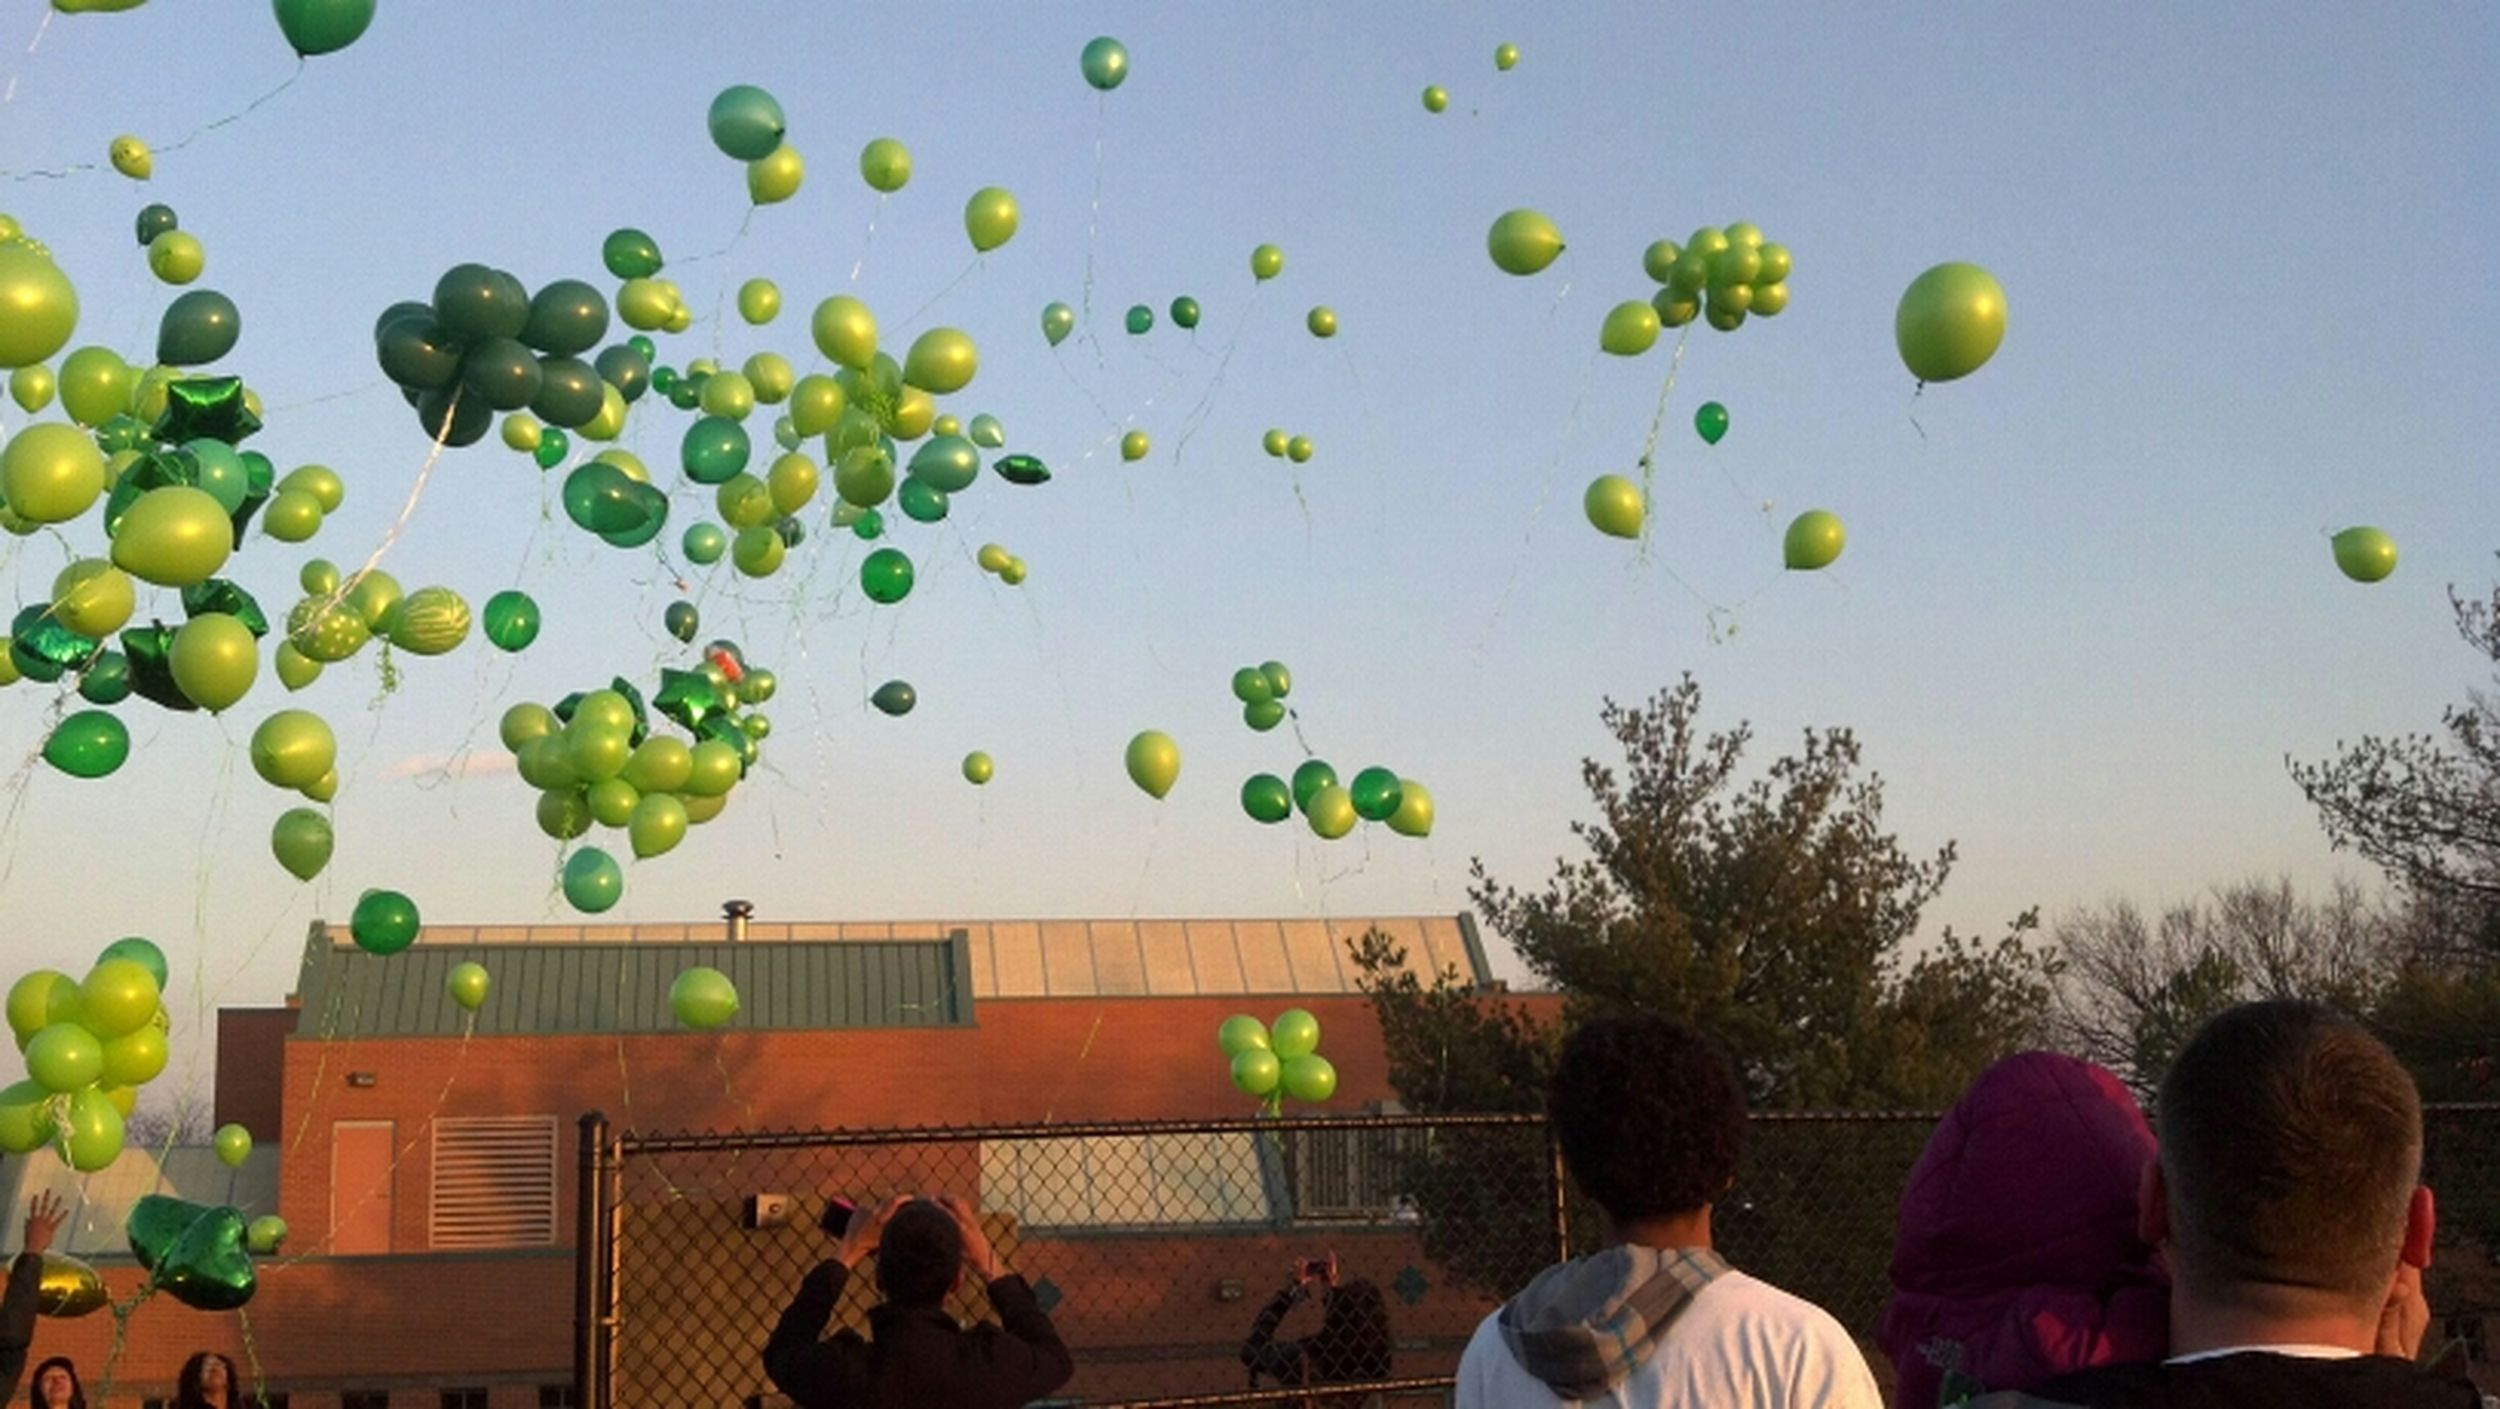 my baby girls balloon release . we missing you like crazy down here Lauryn. hope & pray you're in heaven having it up Angel. I love you Lauryn Santiago <3 #E4L Rest in paradise